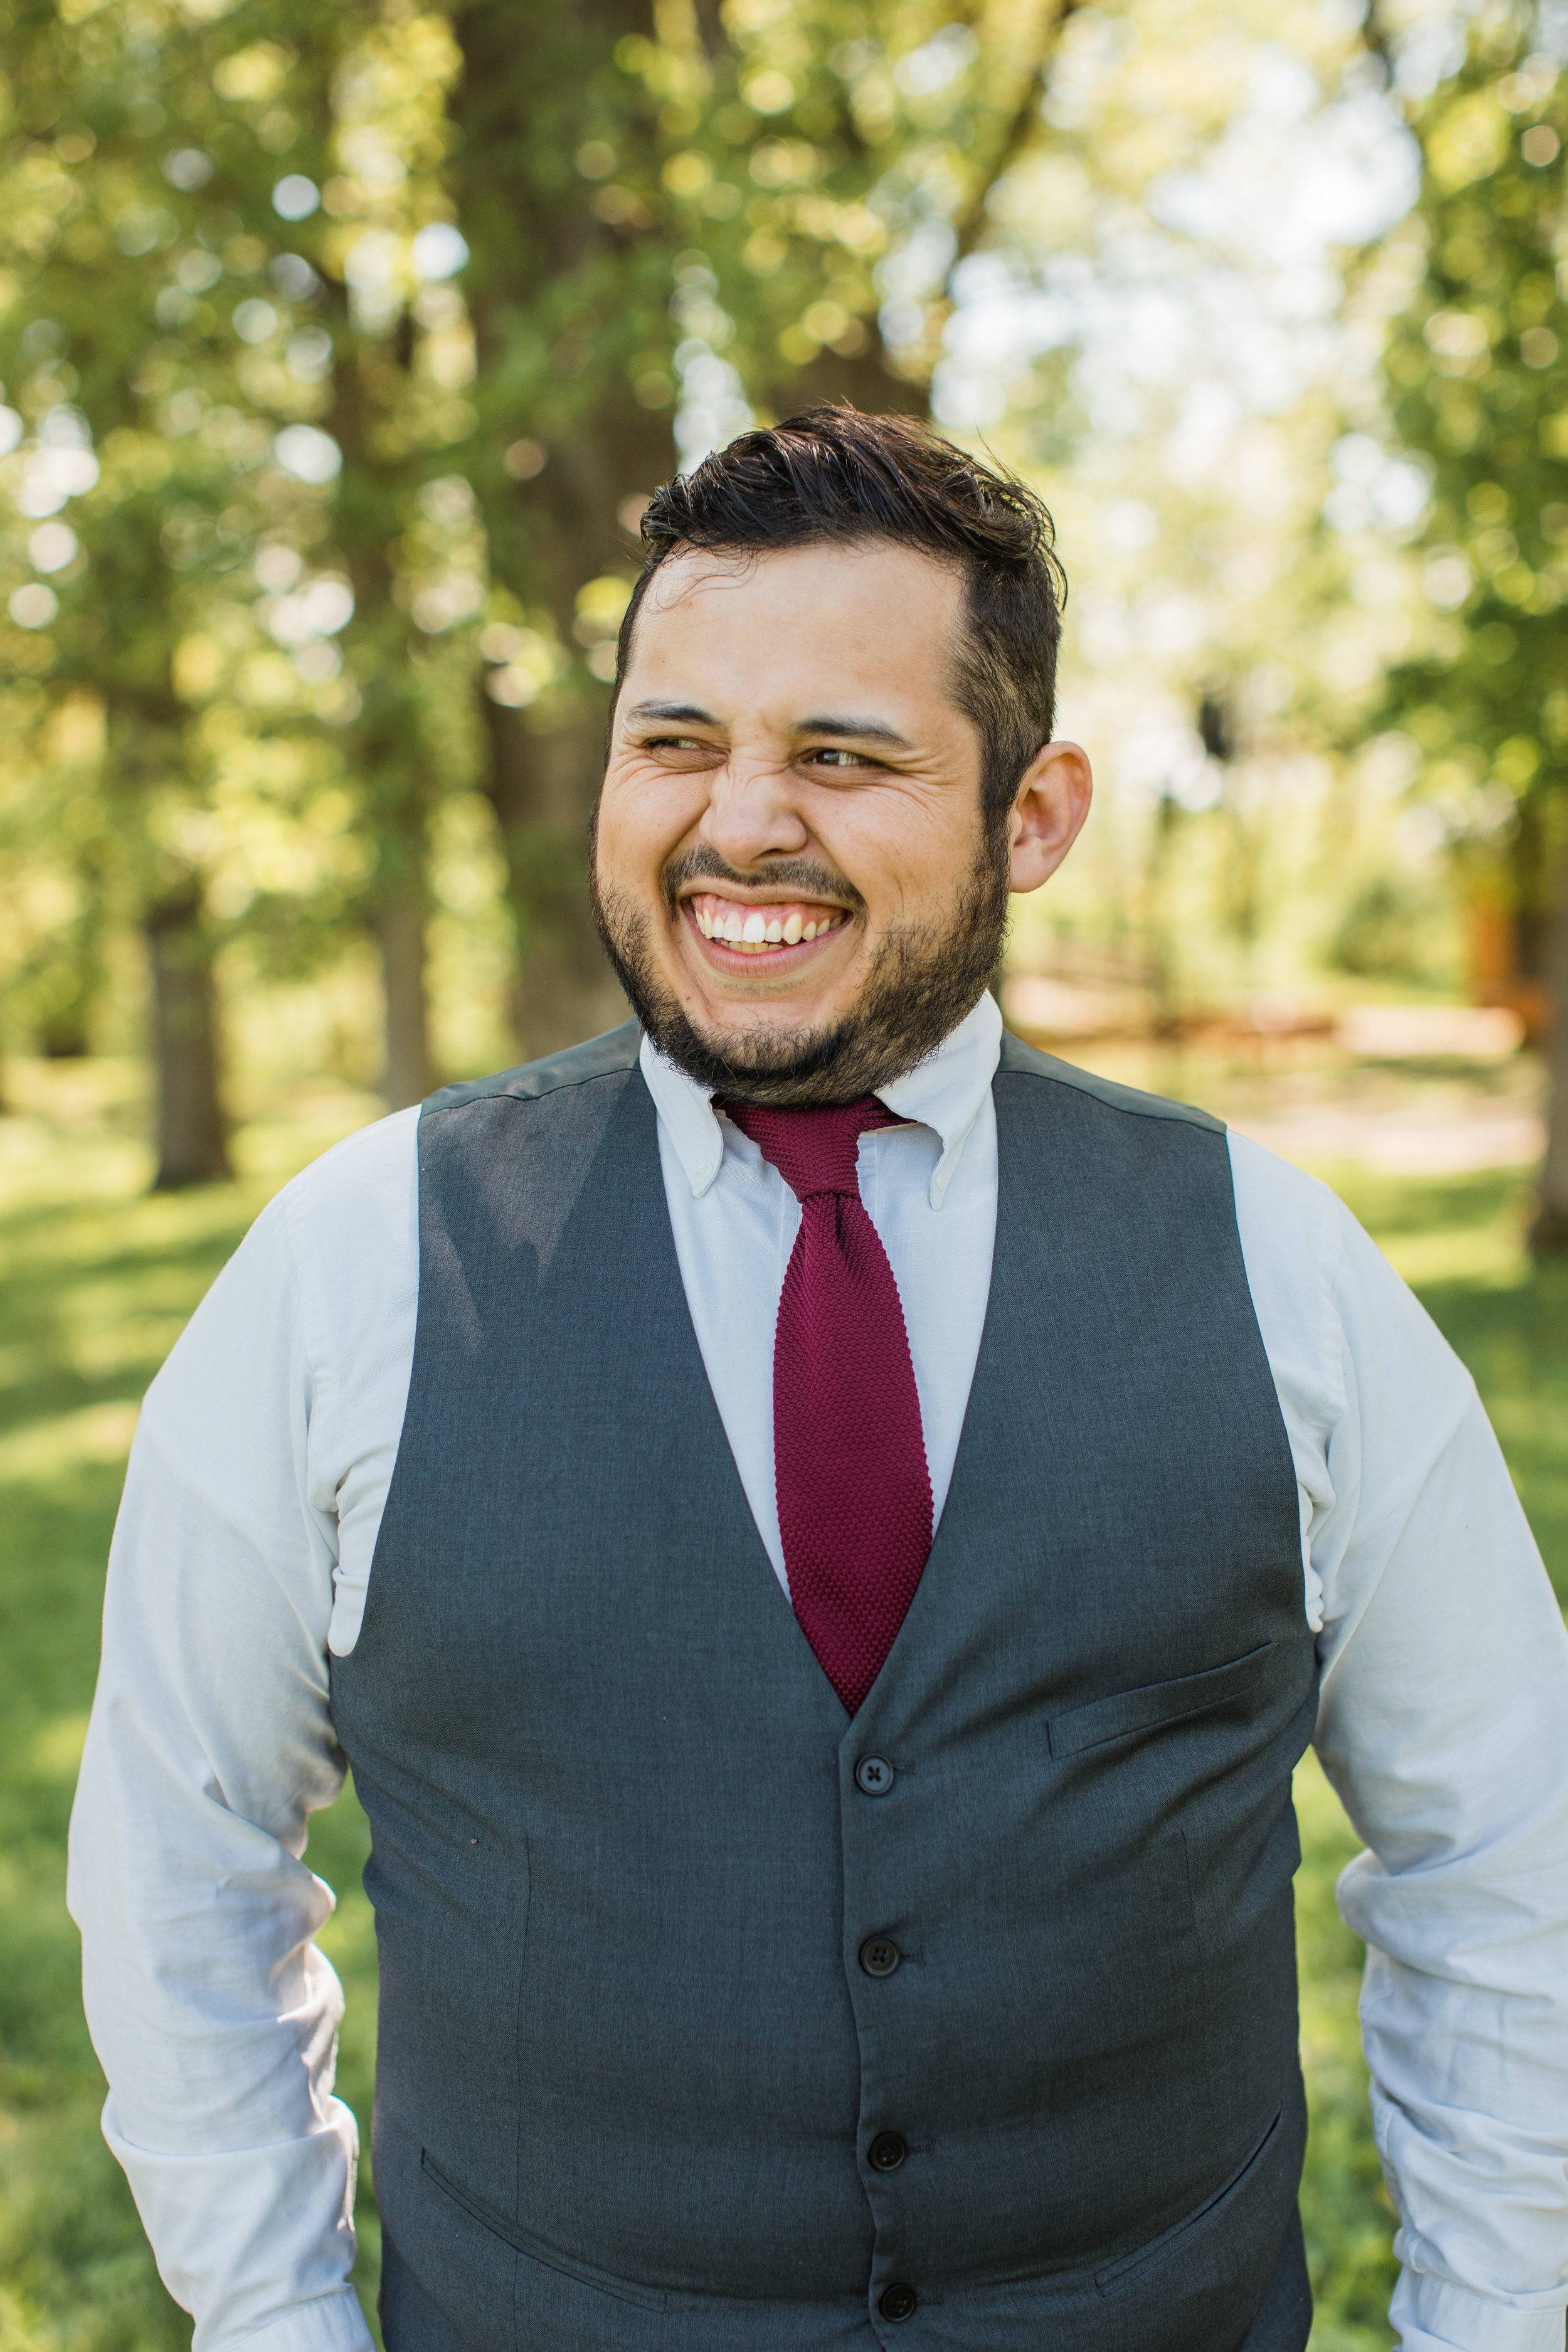 groom laughing and wearing grey vest for wedding outdoors Iowa des moines photographers